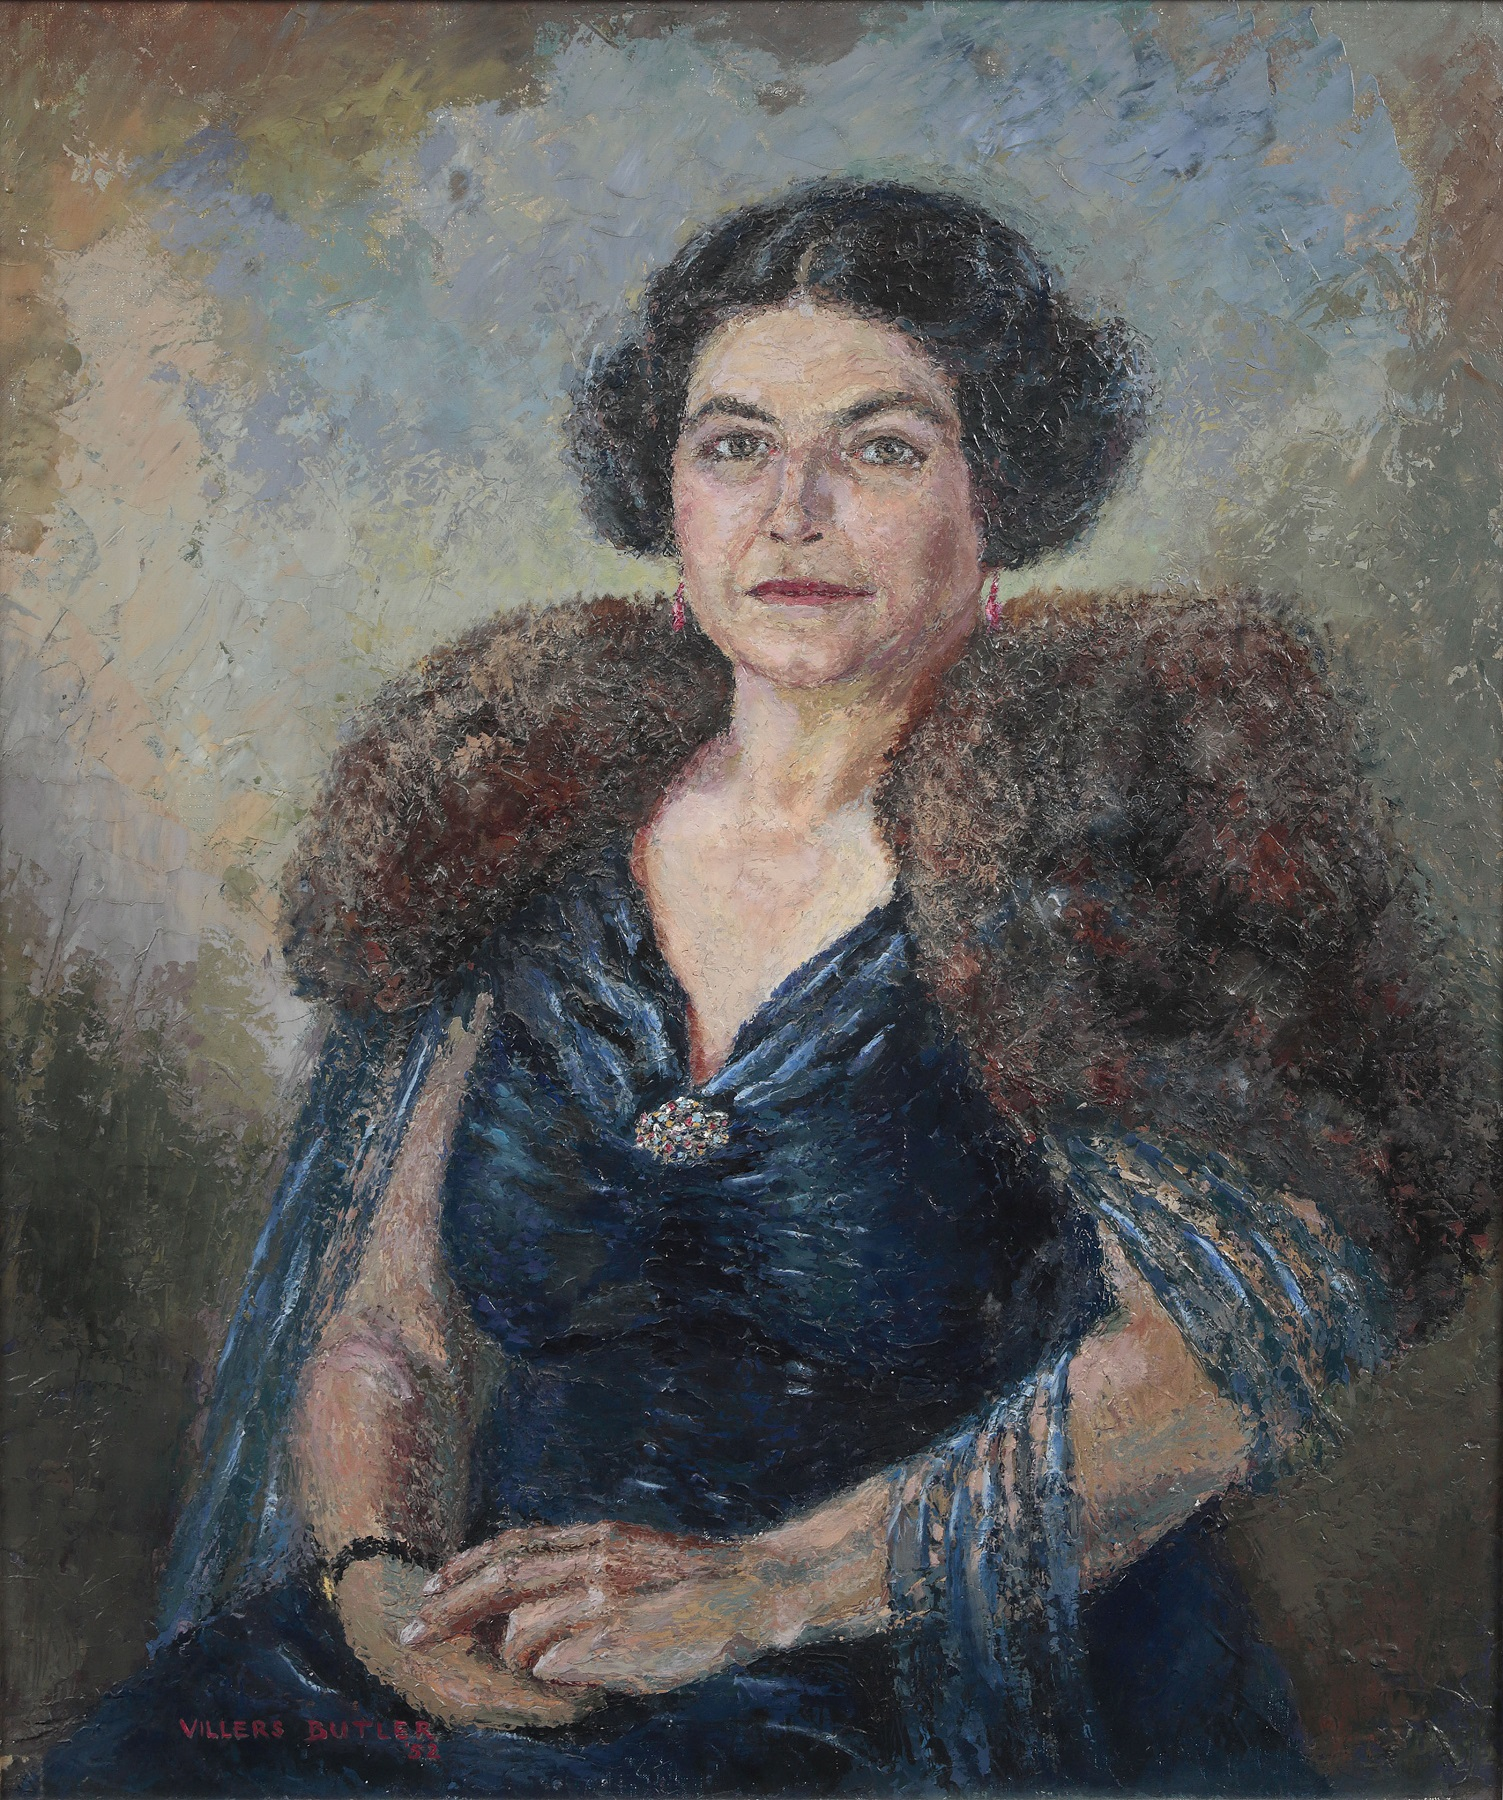 Oil on Canvas portrait of Amy Constance Gentry O.B.E, 1952, by Villers Butler.